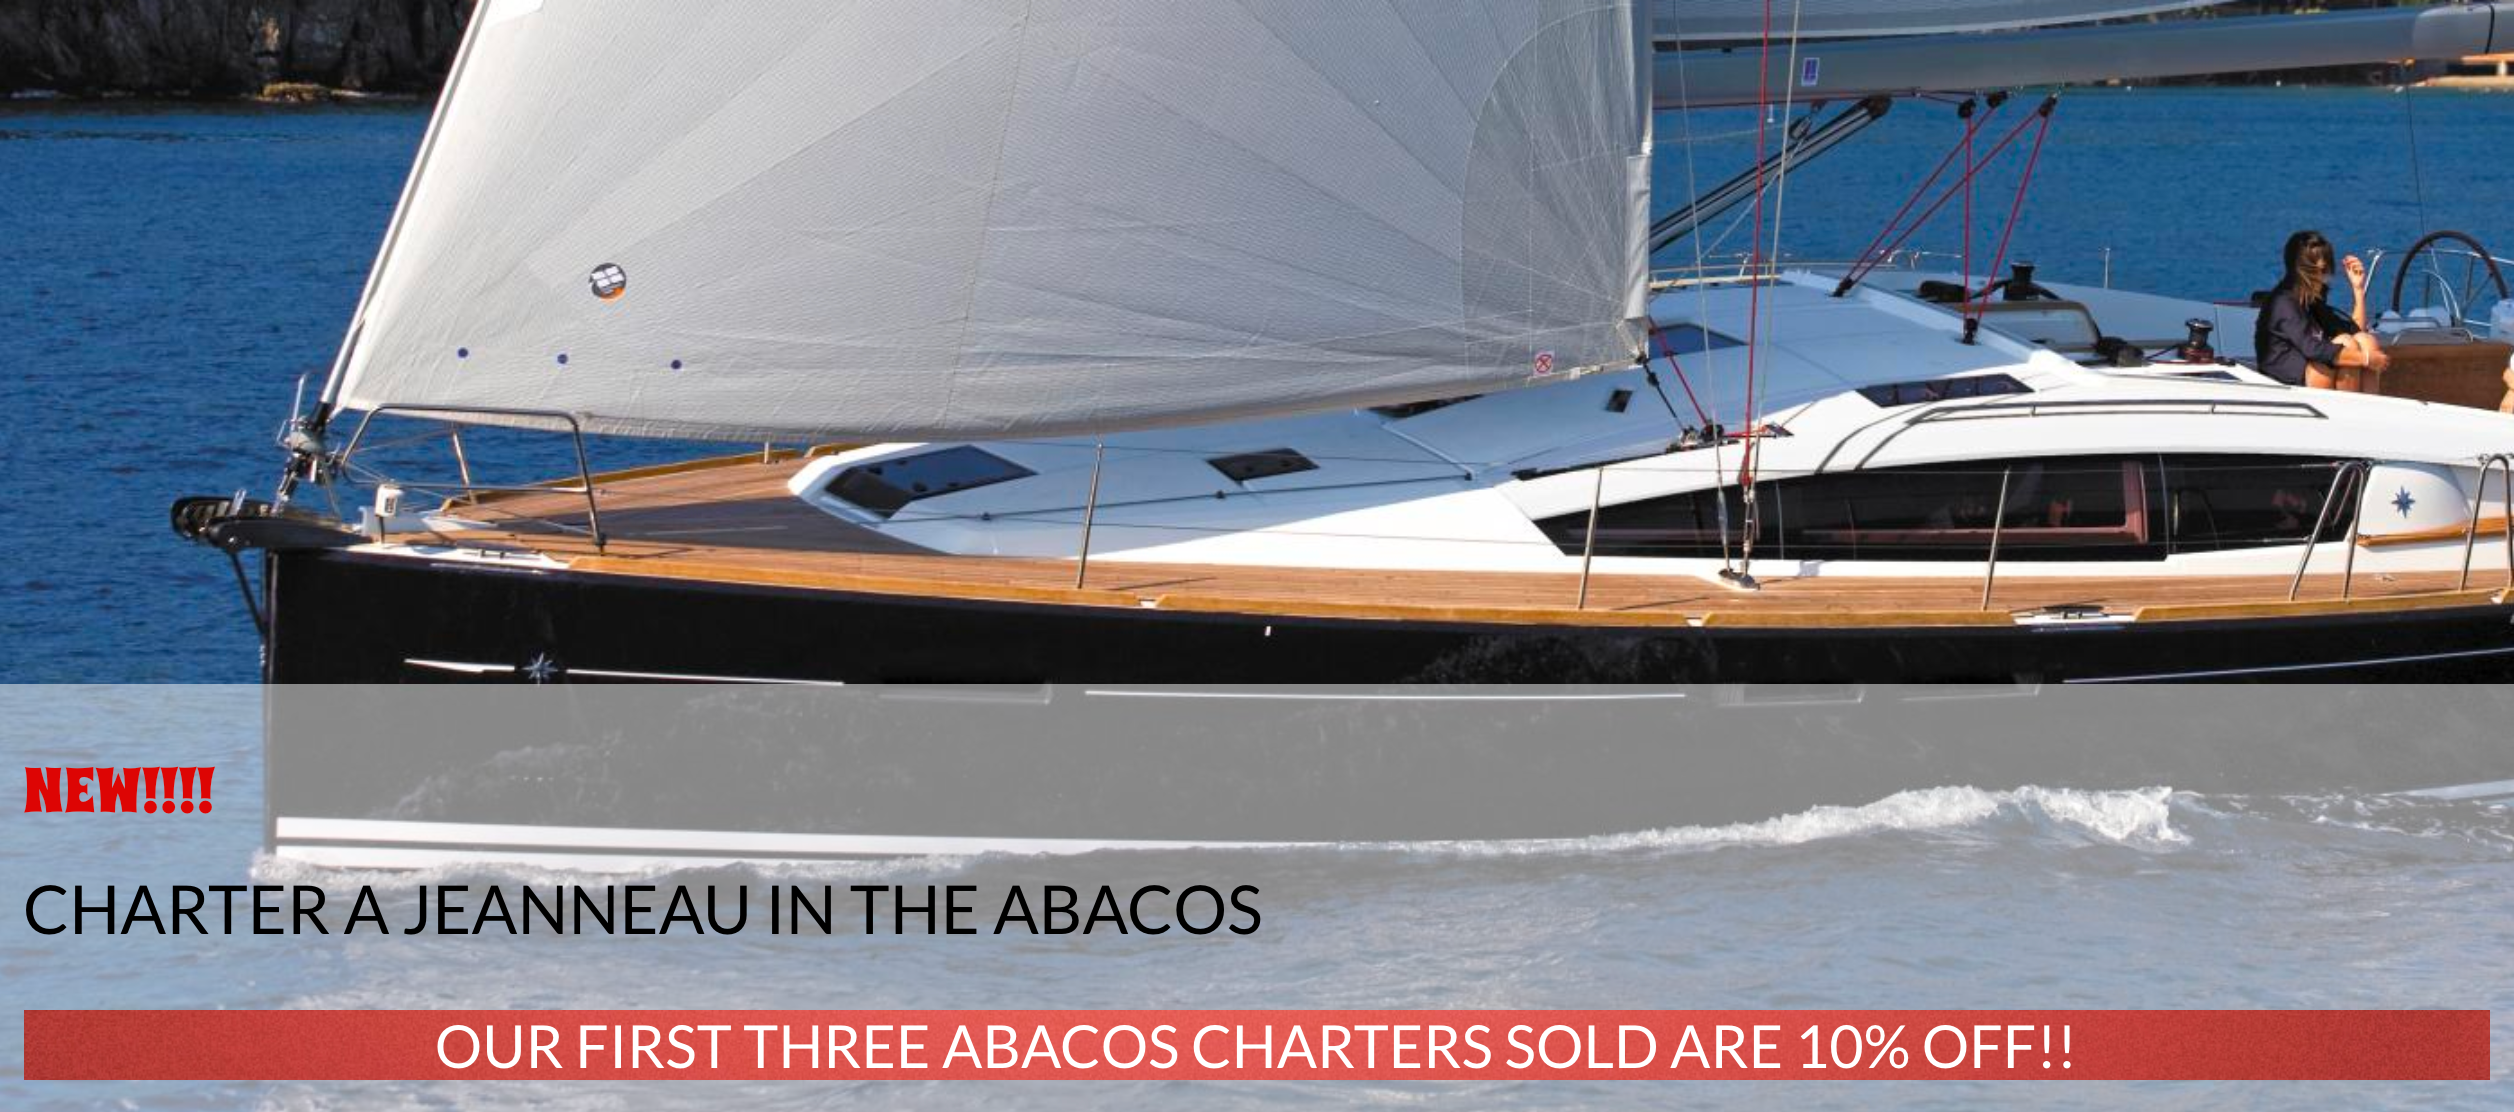 charter a sailboat in the abacos